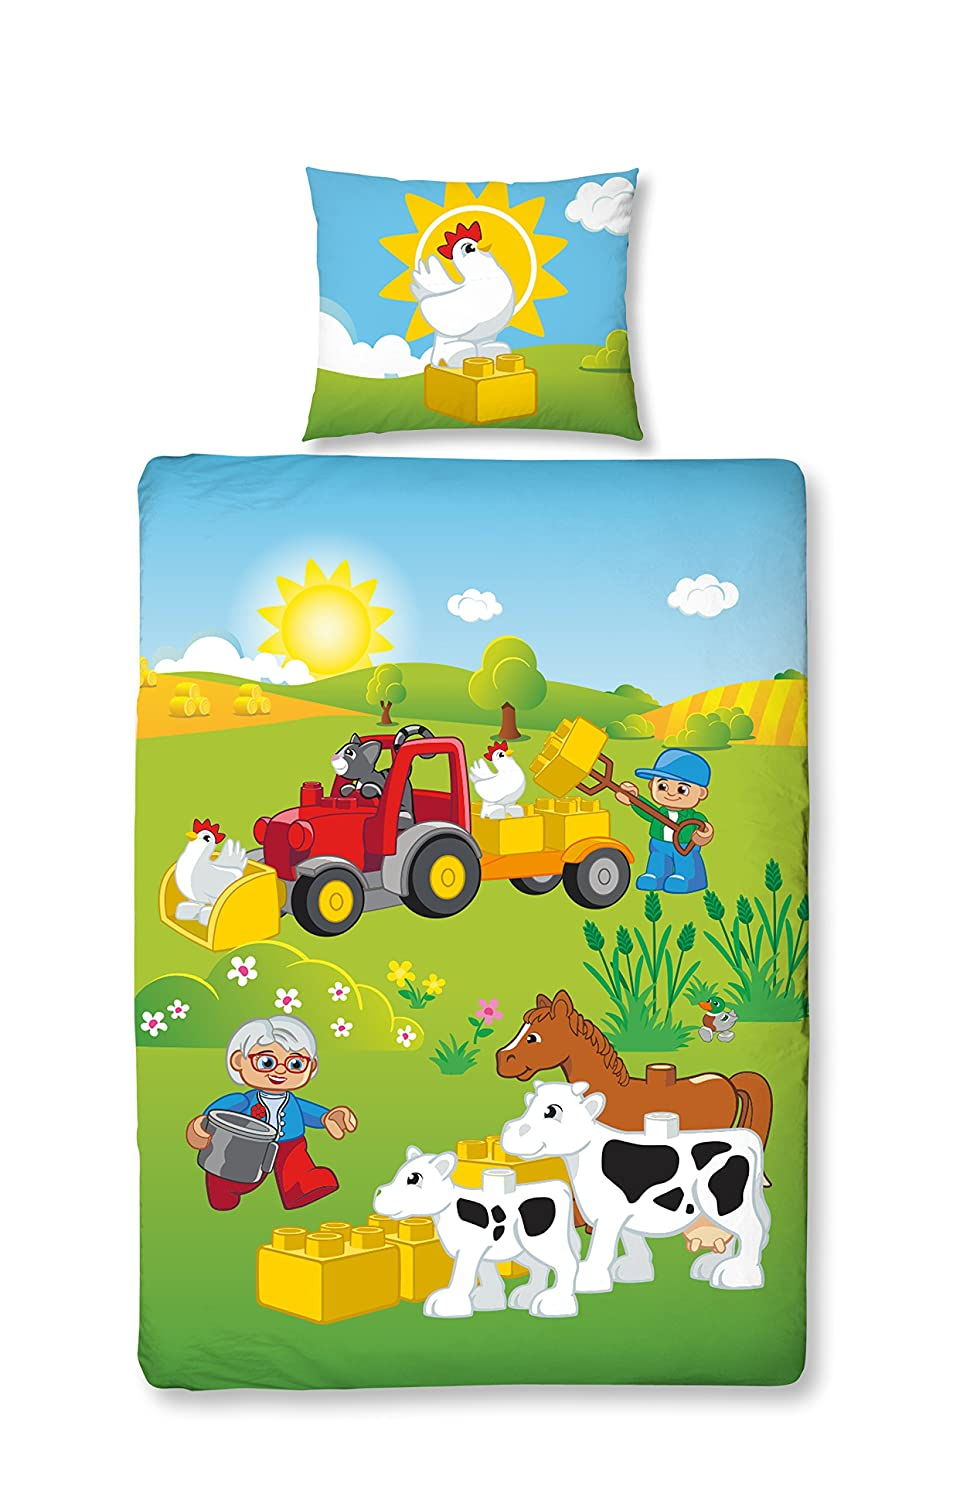 Girl's and Boy's, Baby's, Children's Little Farm LEGO Duplo Bed Linen - Farm Animals & Tractor with Reversible Design – Pack of 2 – 40 x 60cm Pillow Case  + 100 x 135cm Duvet Cover – 100% Cotton Girl's and Boy's Baby's MTOnlinehandel